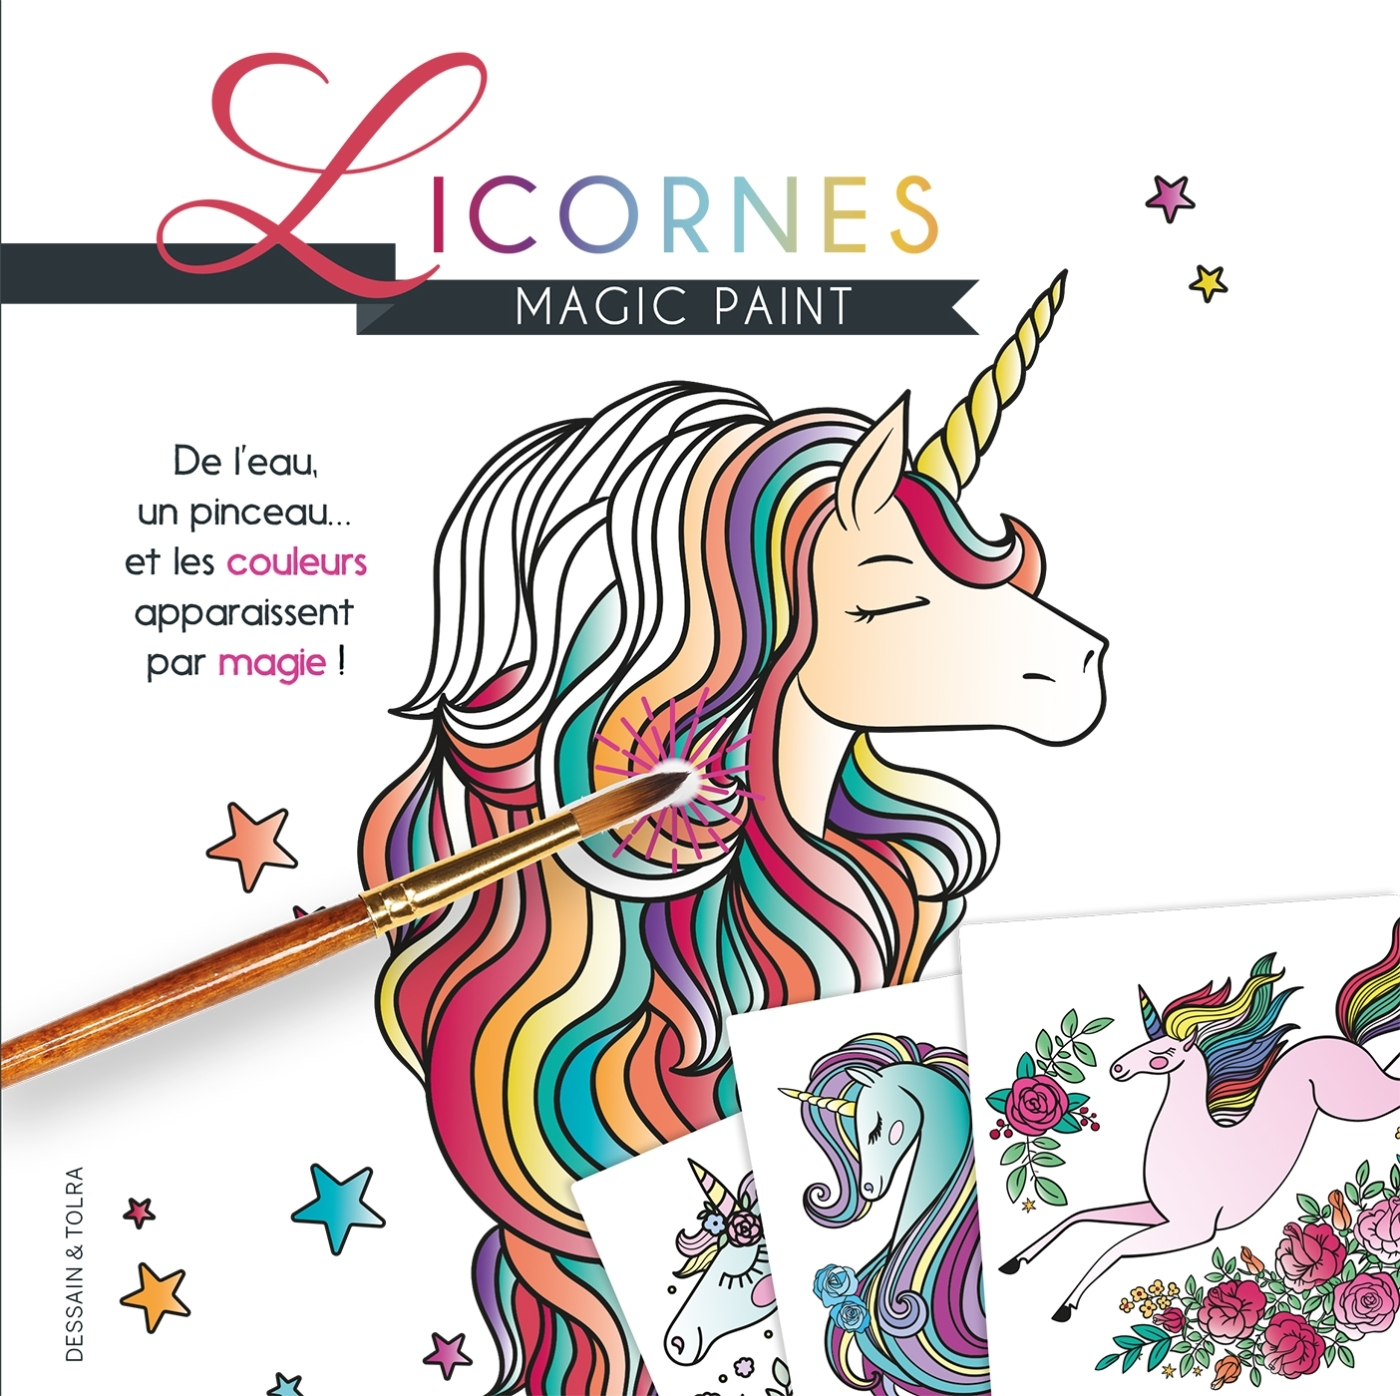 MAGIC PAINT LICORNES